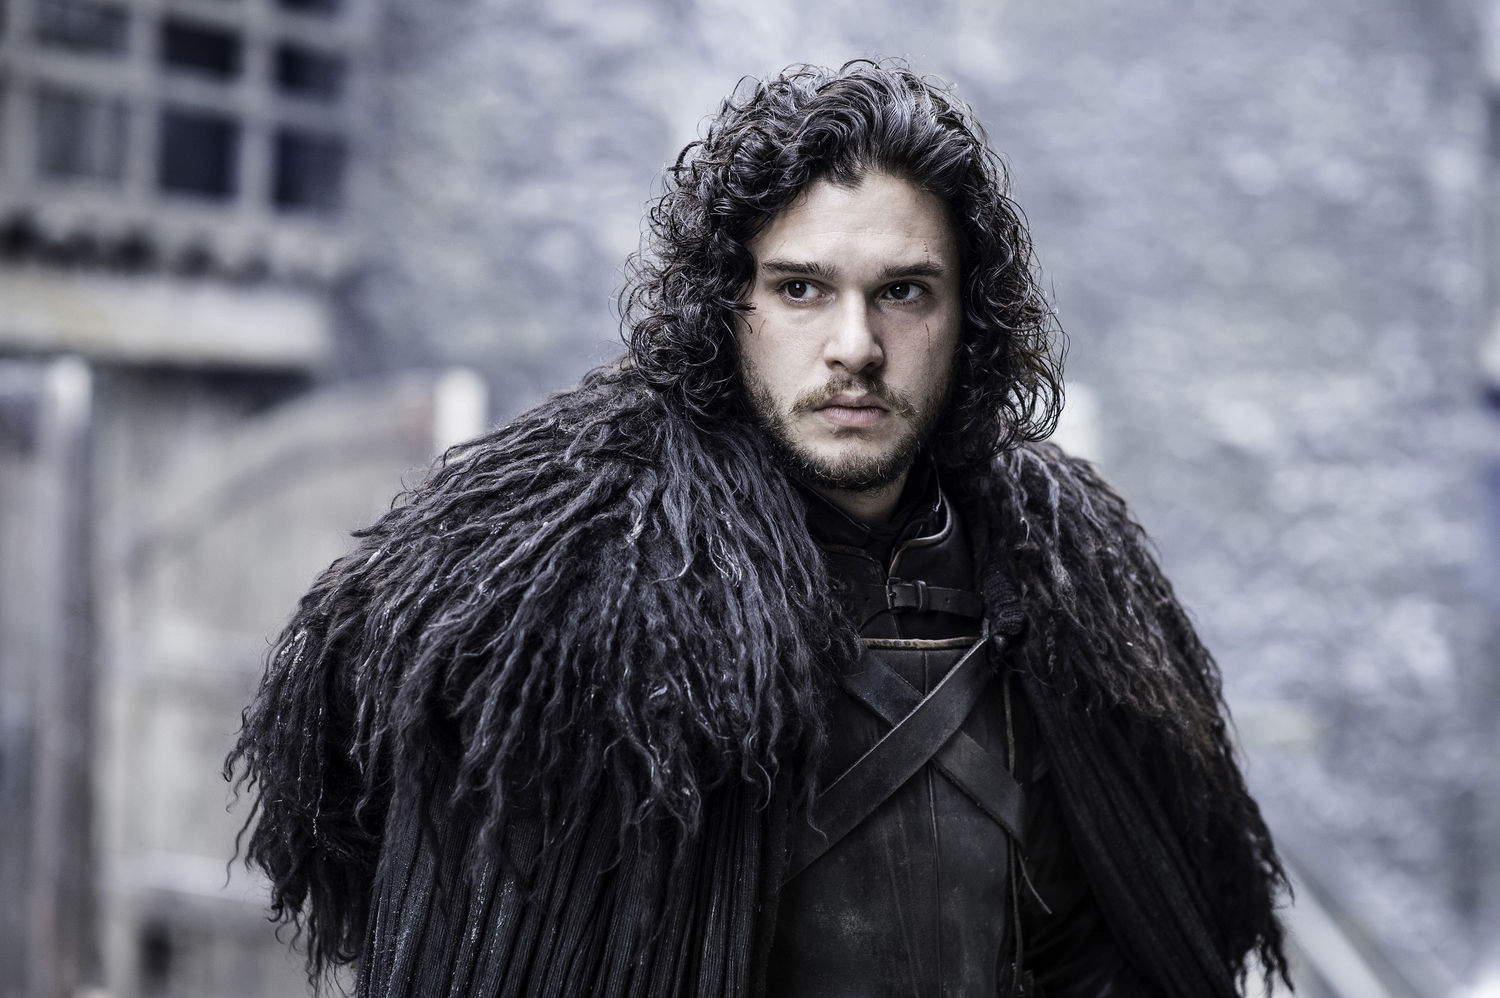 Game of Thrones costumes are rugs from Ikea